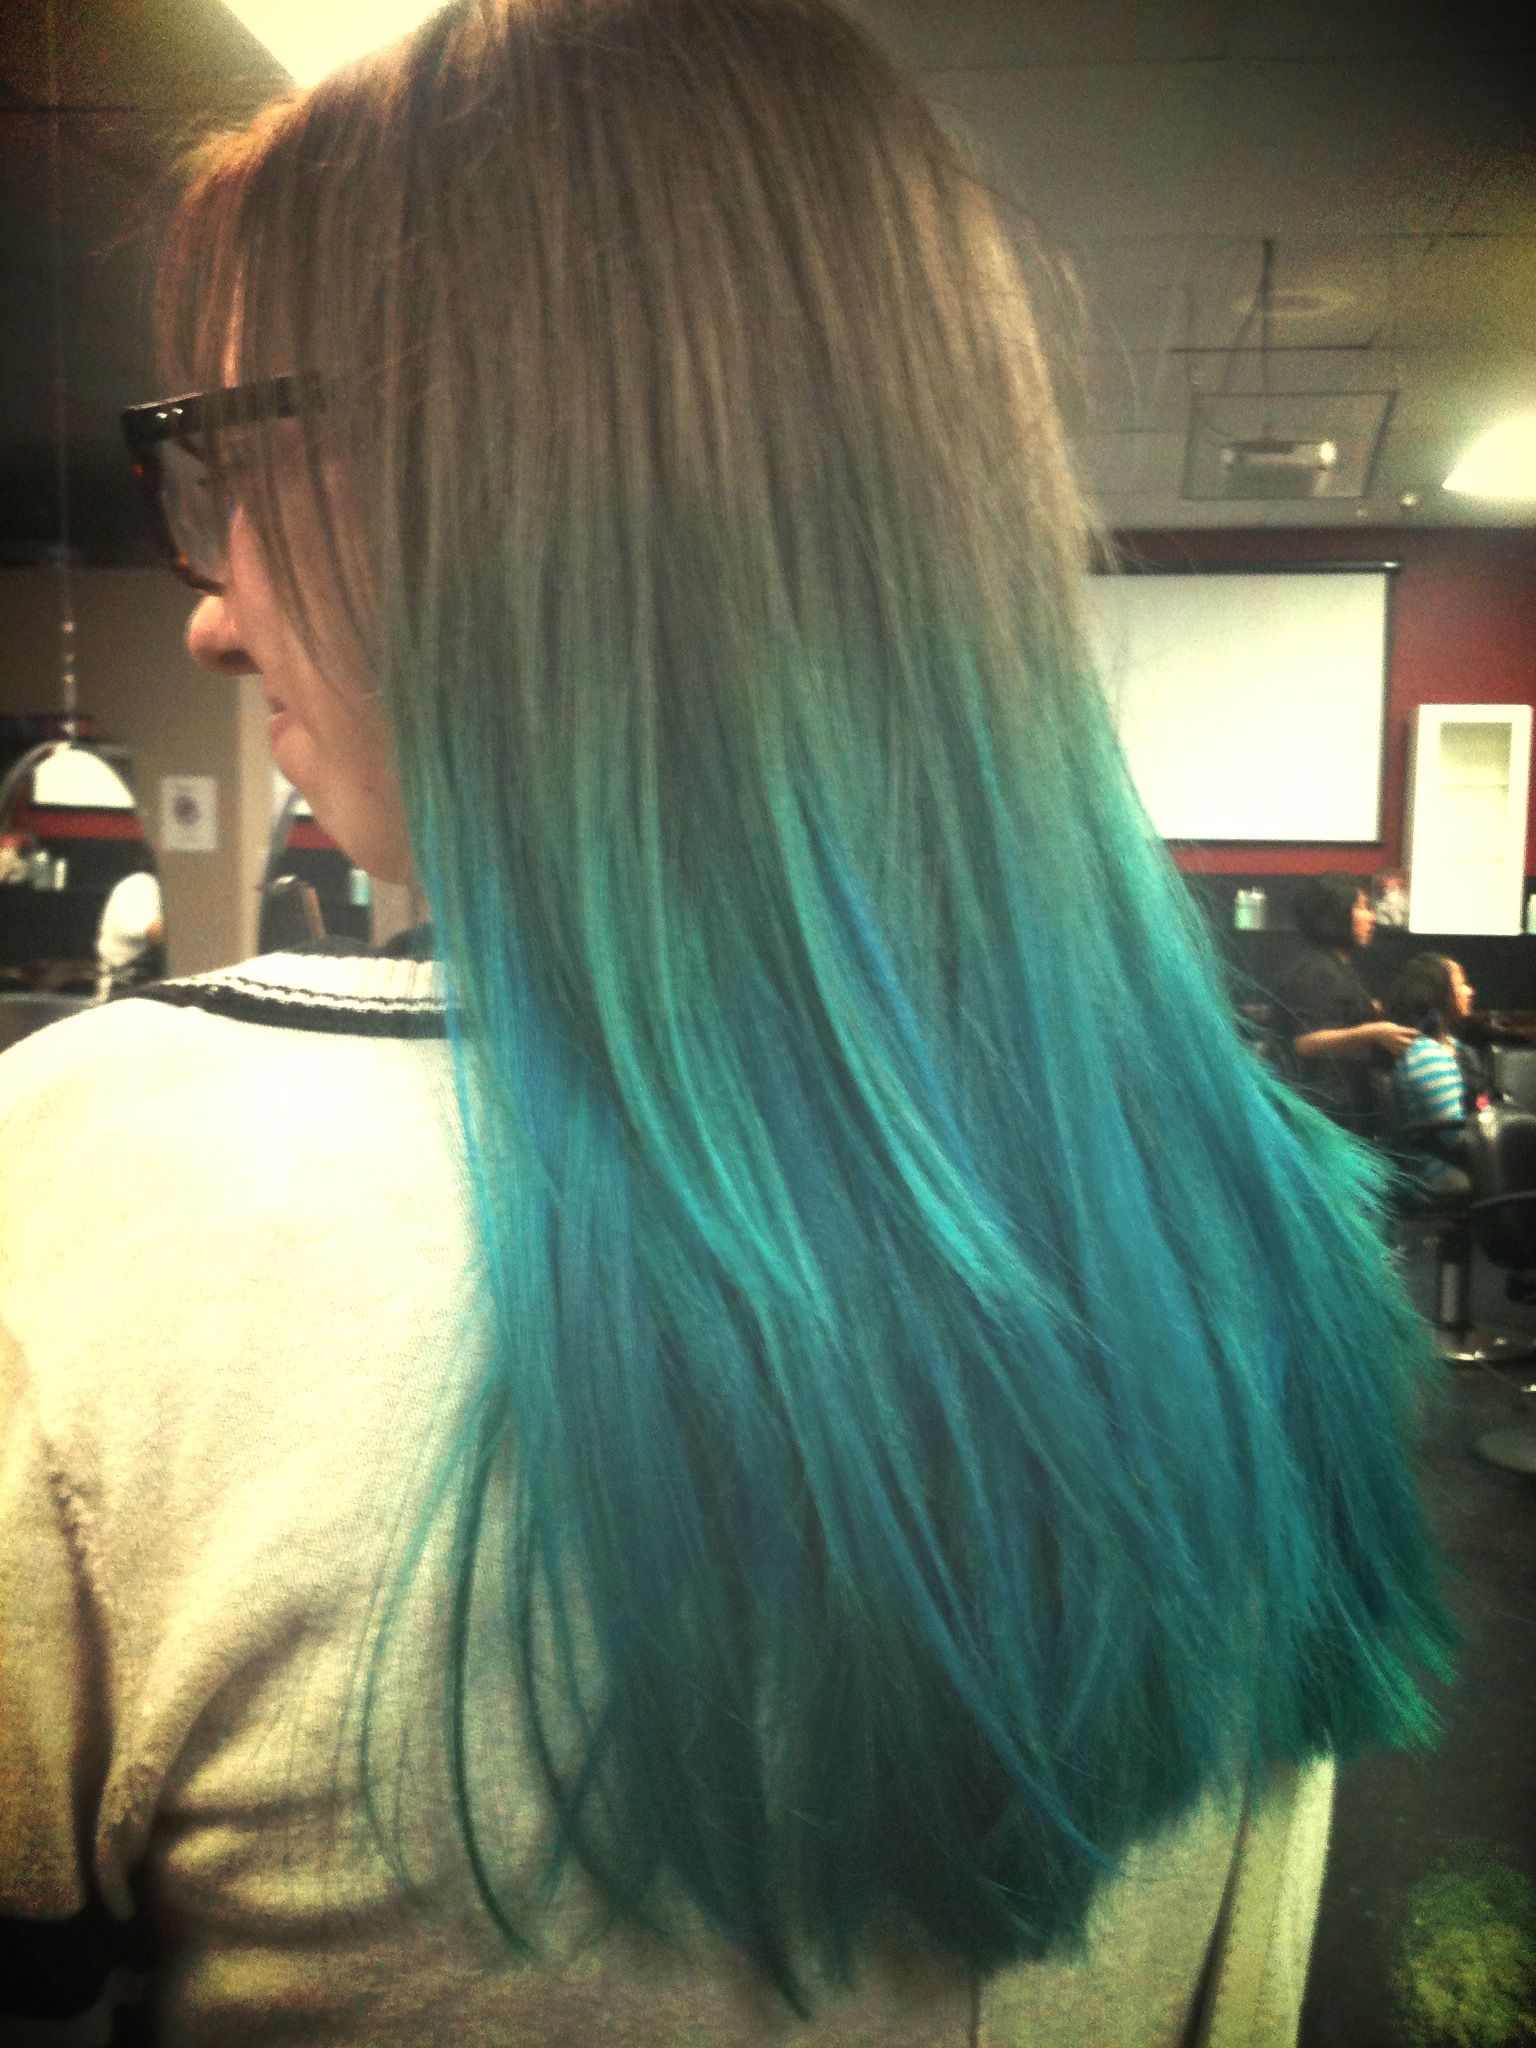 Teal ombre bleach used to create the ombré was the sallyus ion